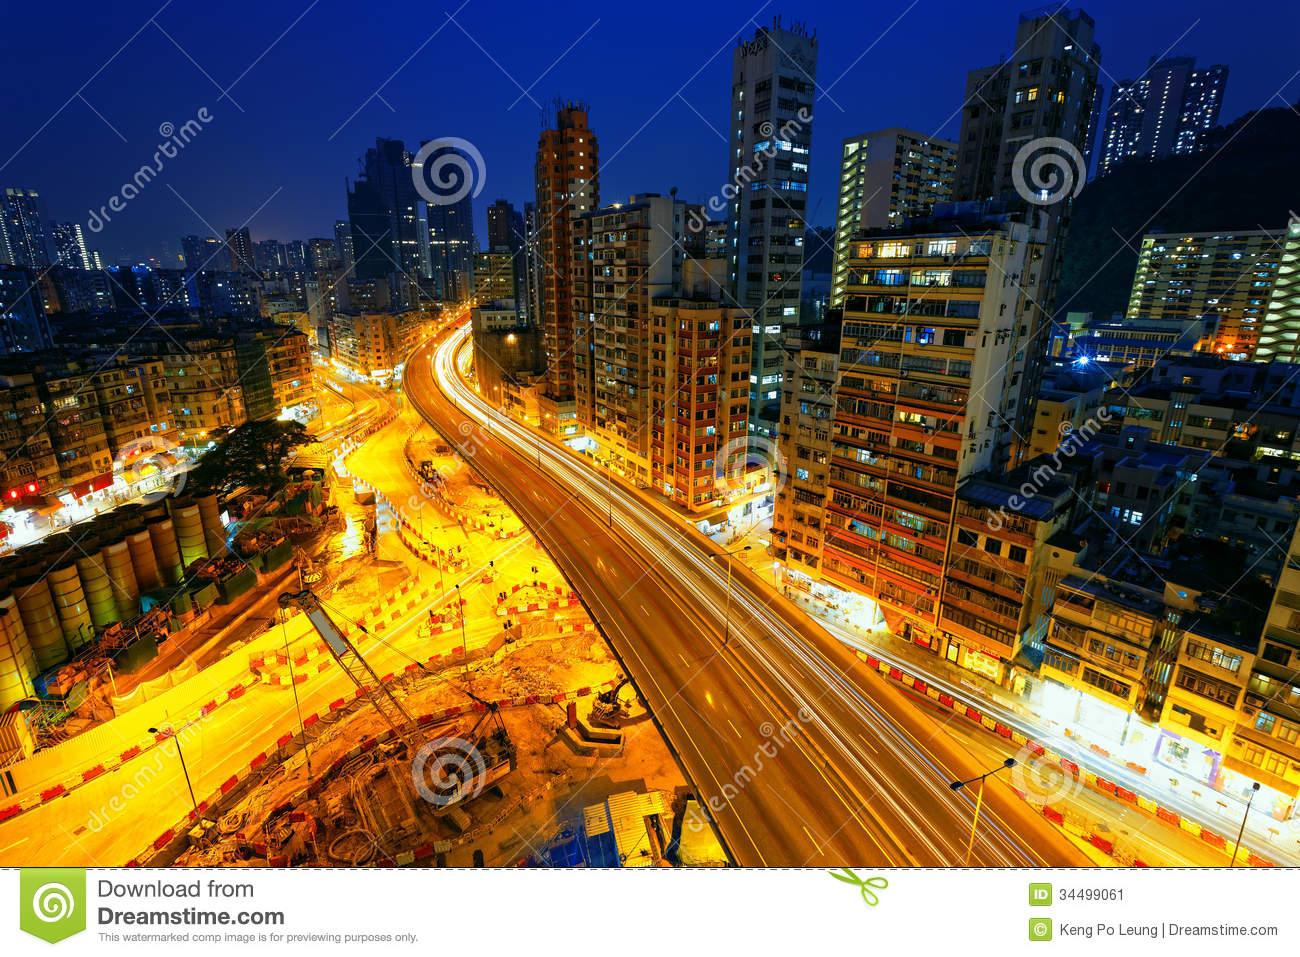 Colorful City Night With Lights Stock Image - Image: 34499061  Colorful City N...